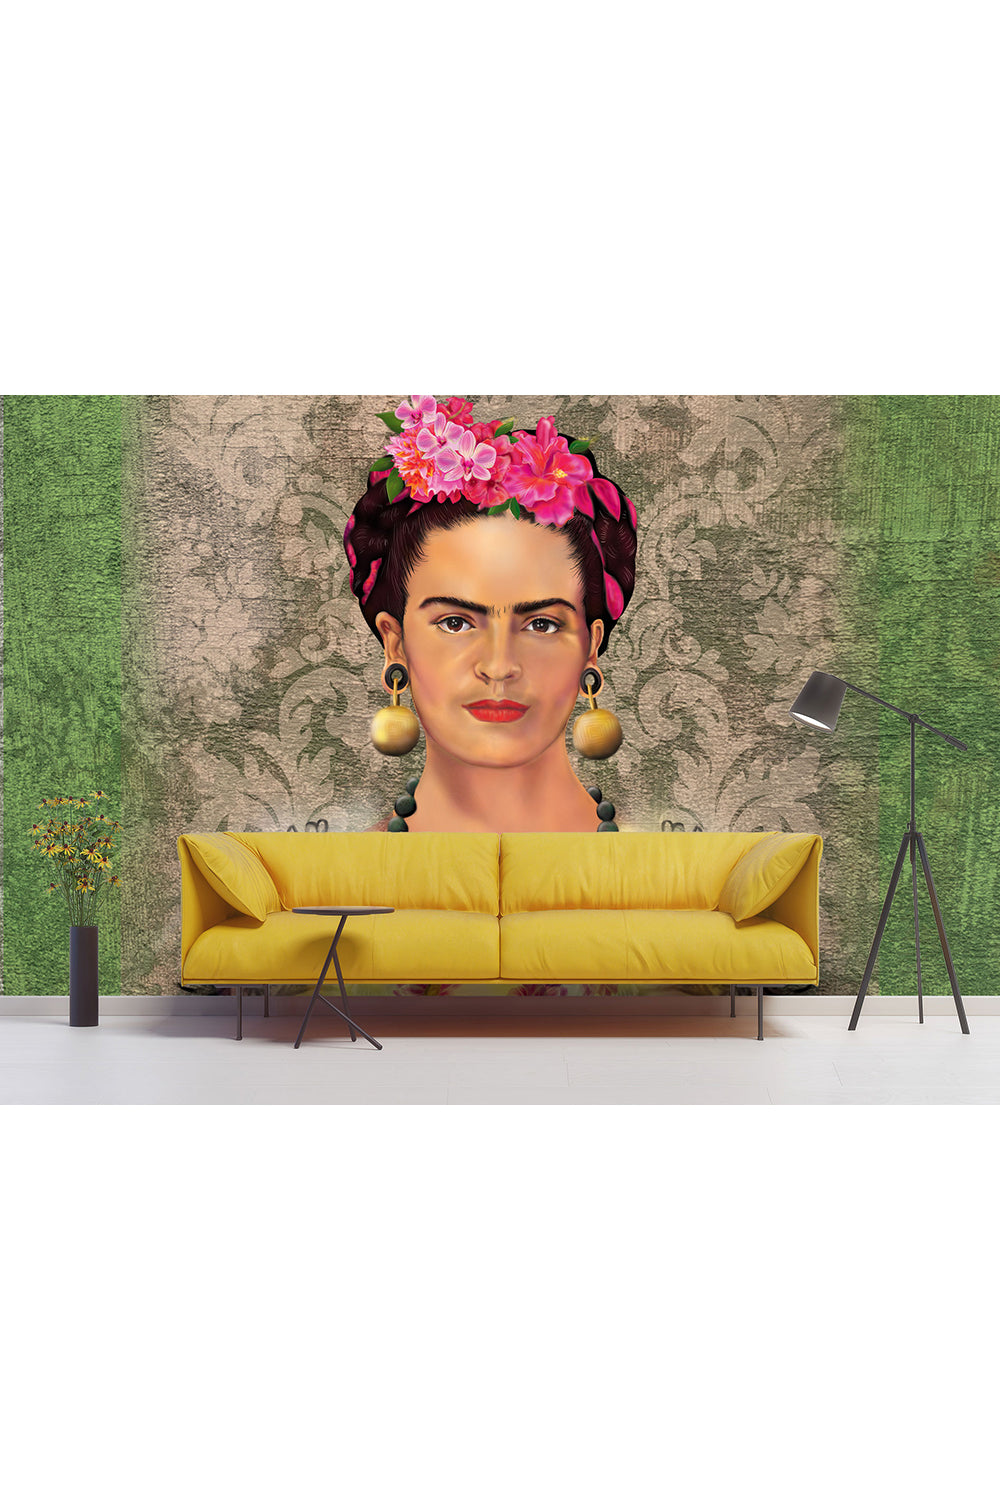 Flowers Of Frida Wallpaper Frida Kahlo Wallpaper Online